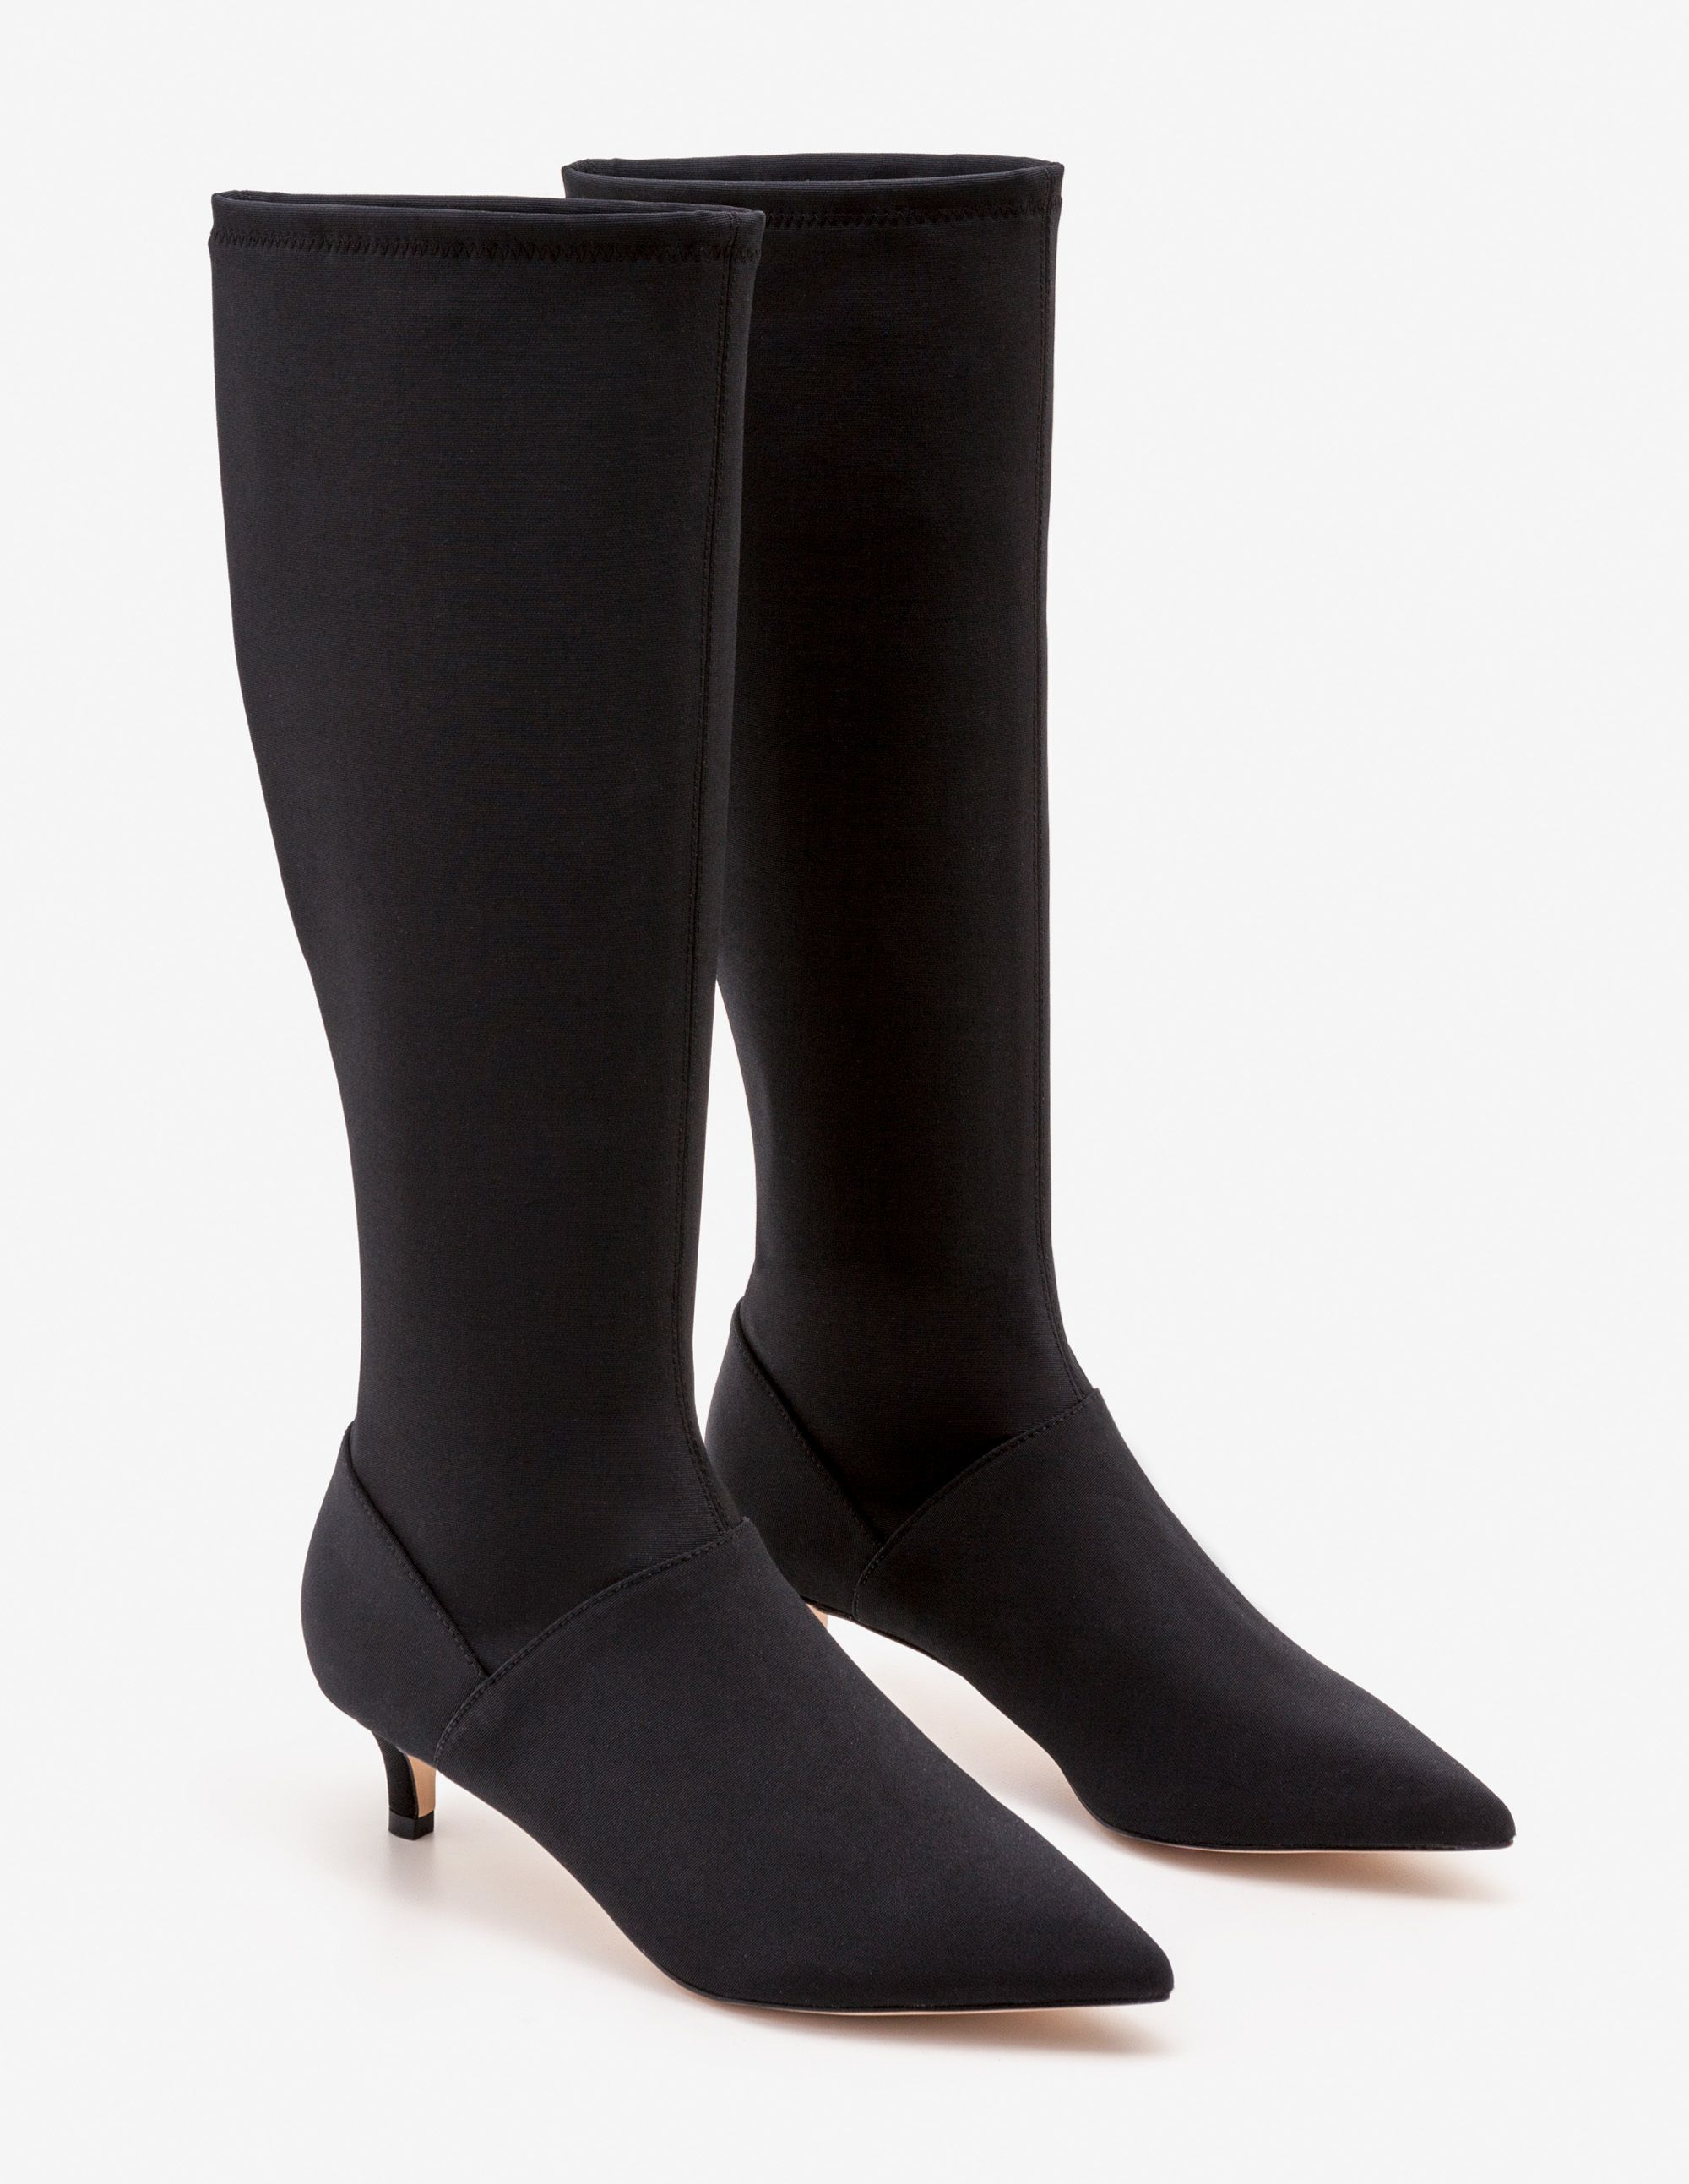 66798701a1b 15 of the best knee high boots for winter